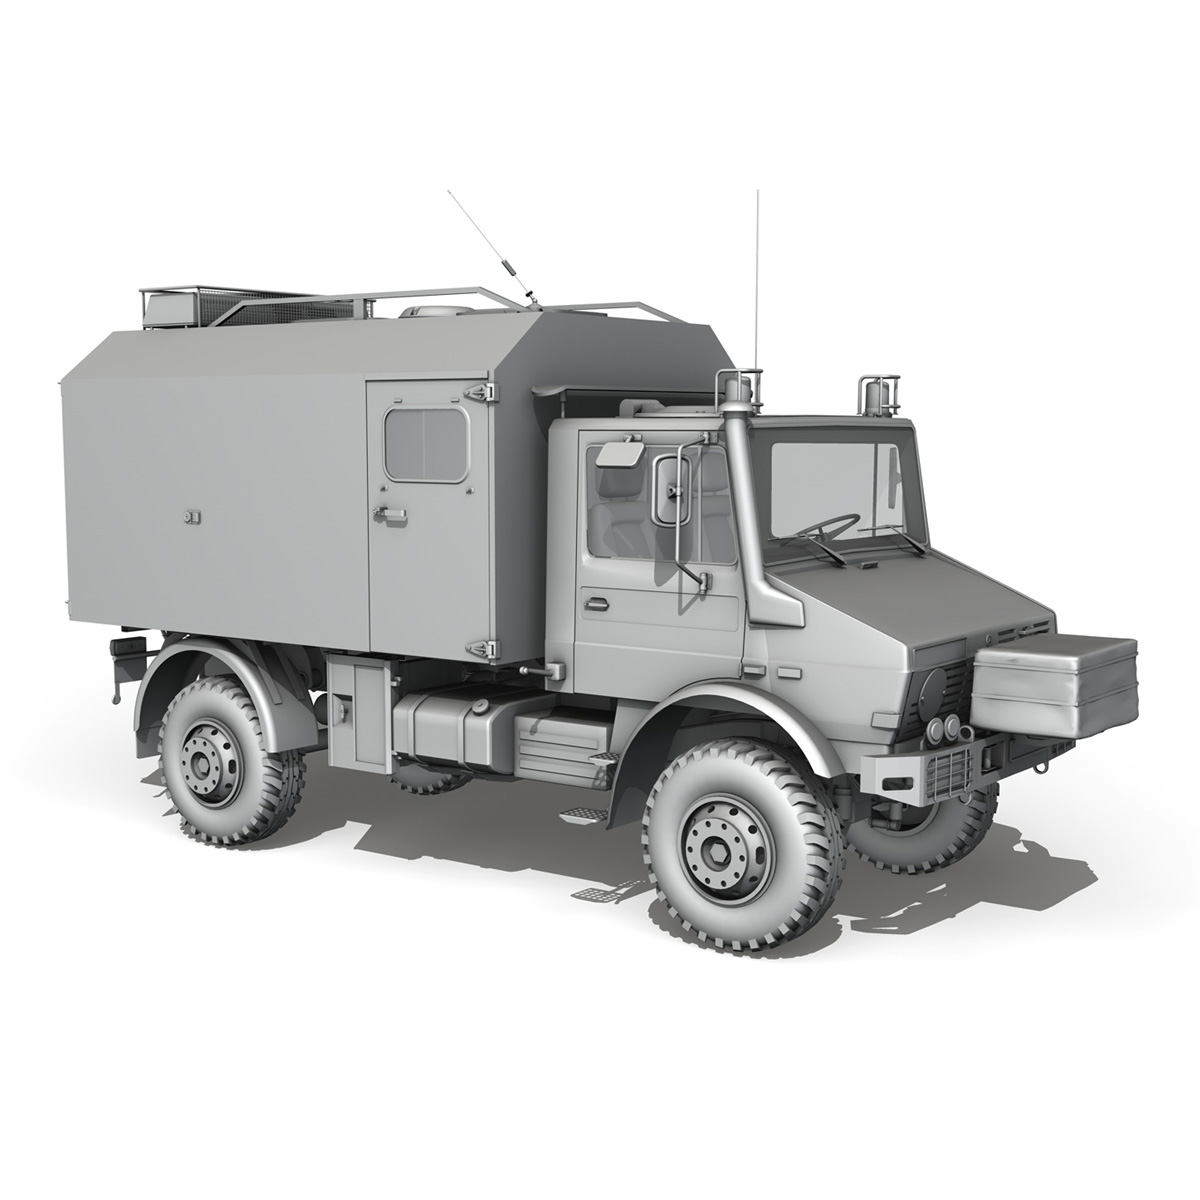 mercedes benz unimog u1300l ambulance 3d model 3ds fbx c4d lwo obj 189540